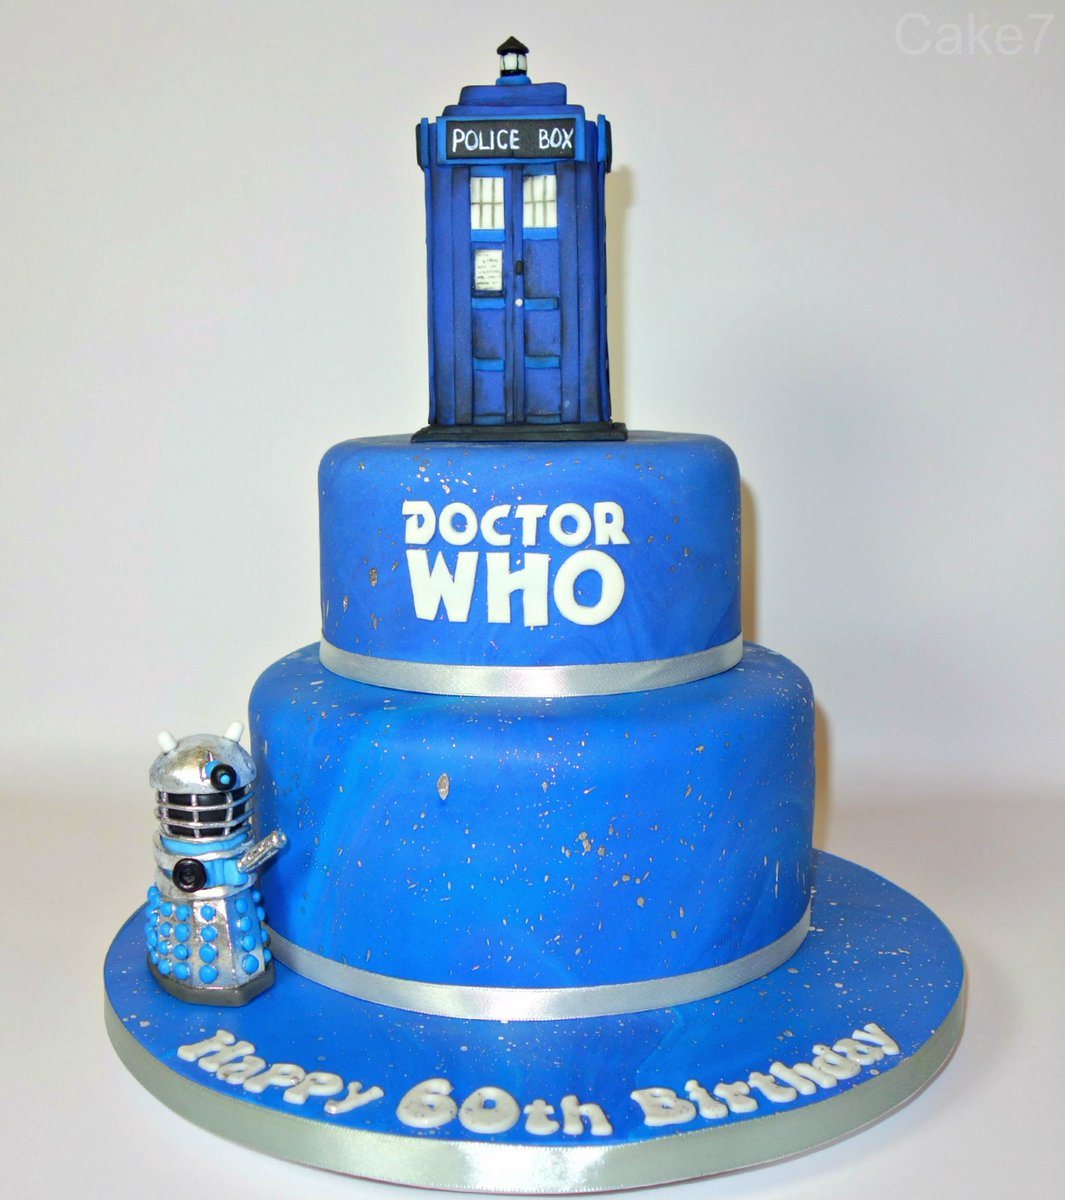 Astonishing Cake7 On Twitter Heres My Doctor Who Themed Two Tier Birthday Funny Birthday Cards Online Inifofree Goldxyz